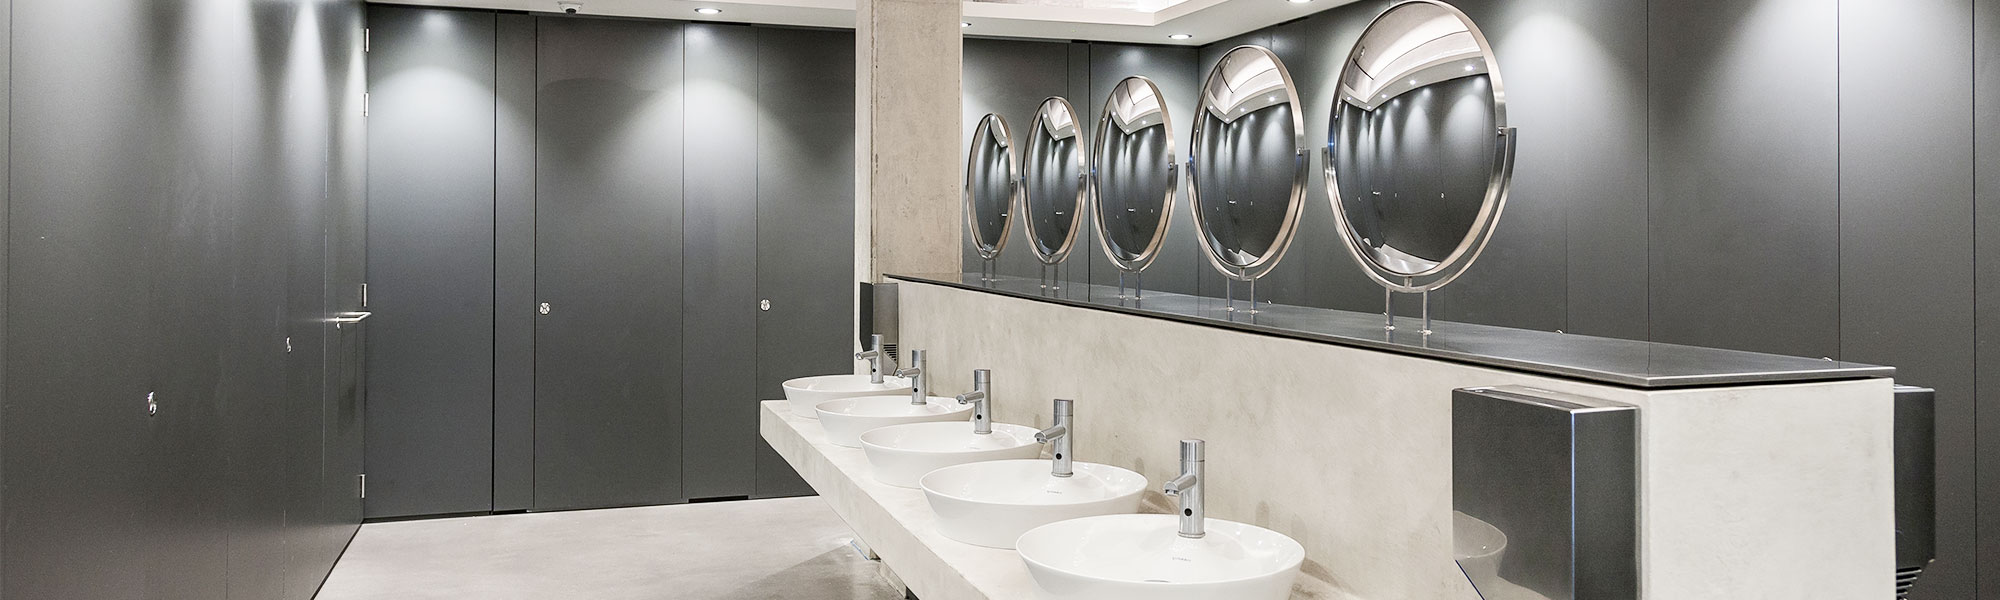 grant westfield  venesta washroom systems acquires the